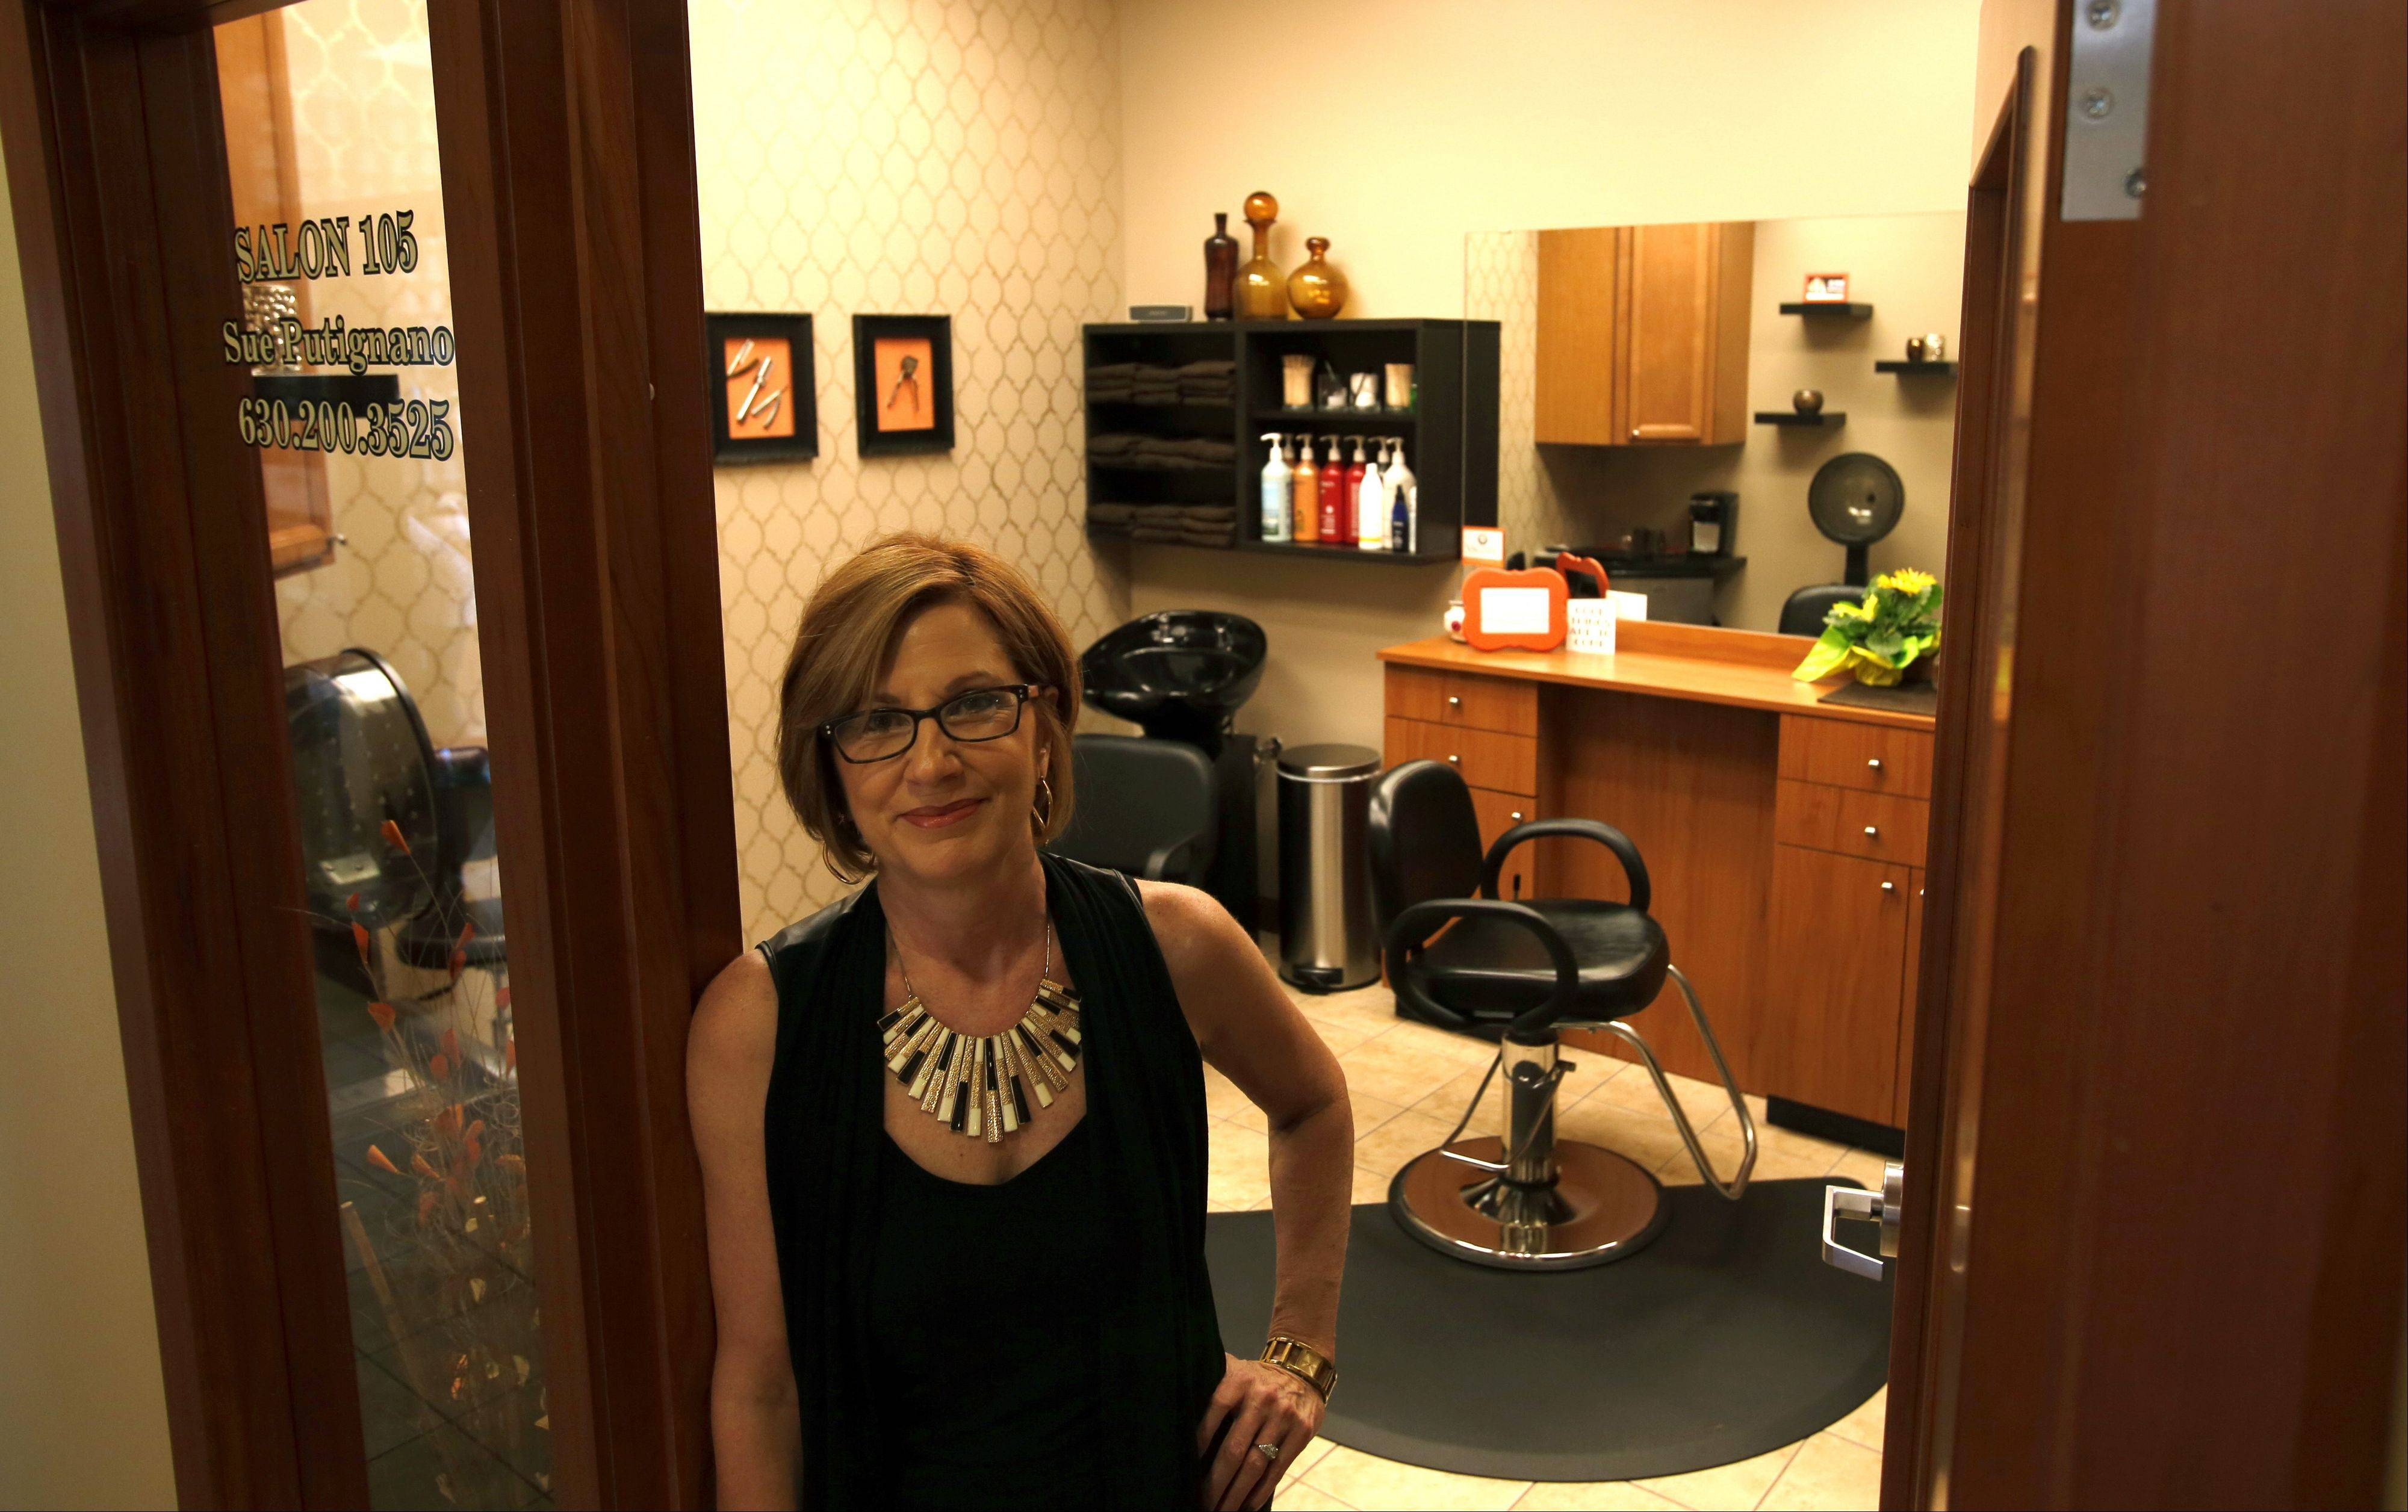 Tired of the noise and bustle of a large salon, stylist Sue Putignano decided to open her own one-person salon, and her business, Salon 105, is now open in the InStyle Salon Suites just south of Algonquin Commons.